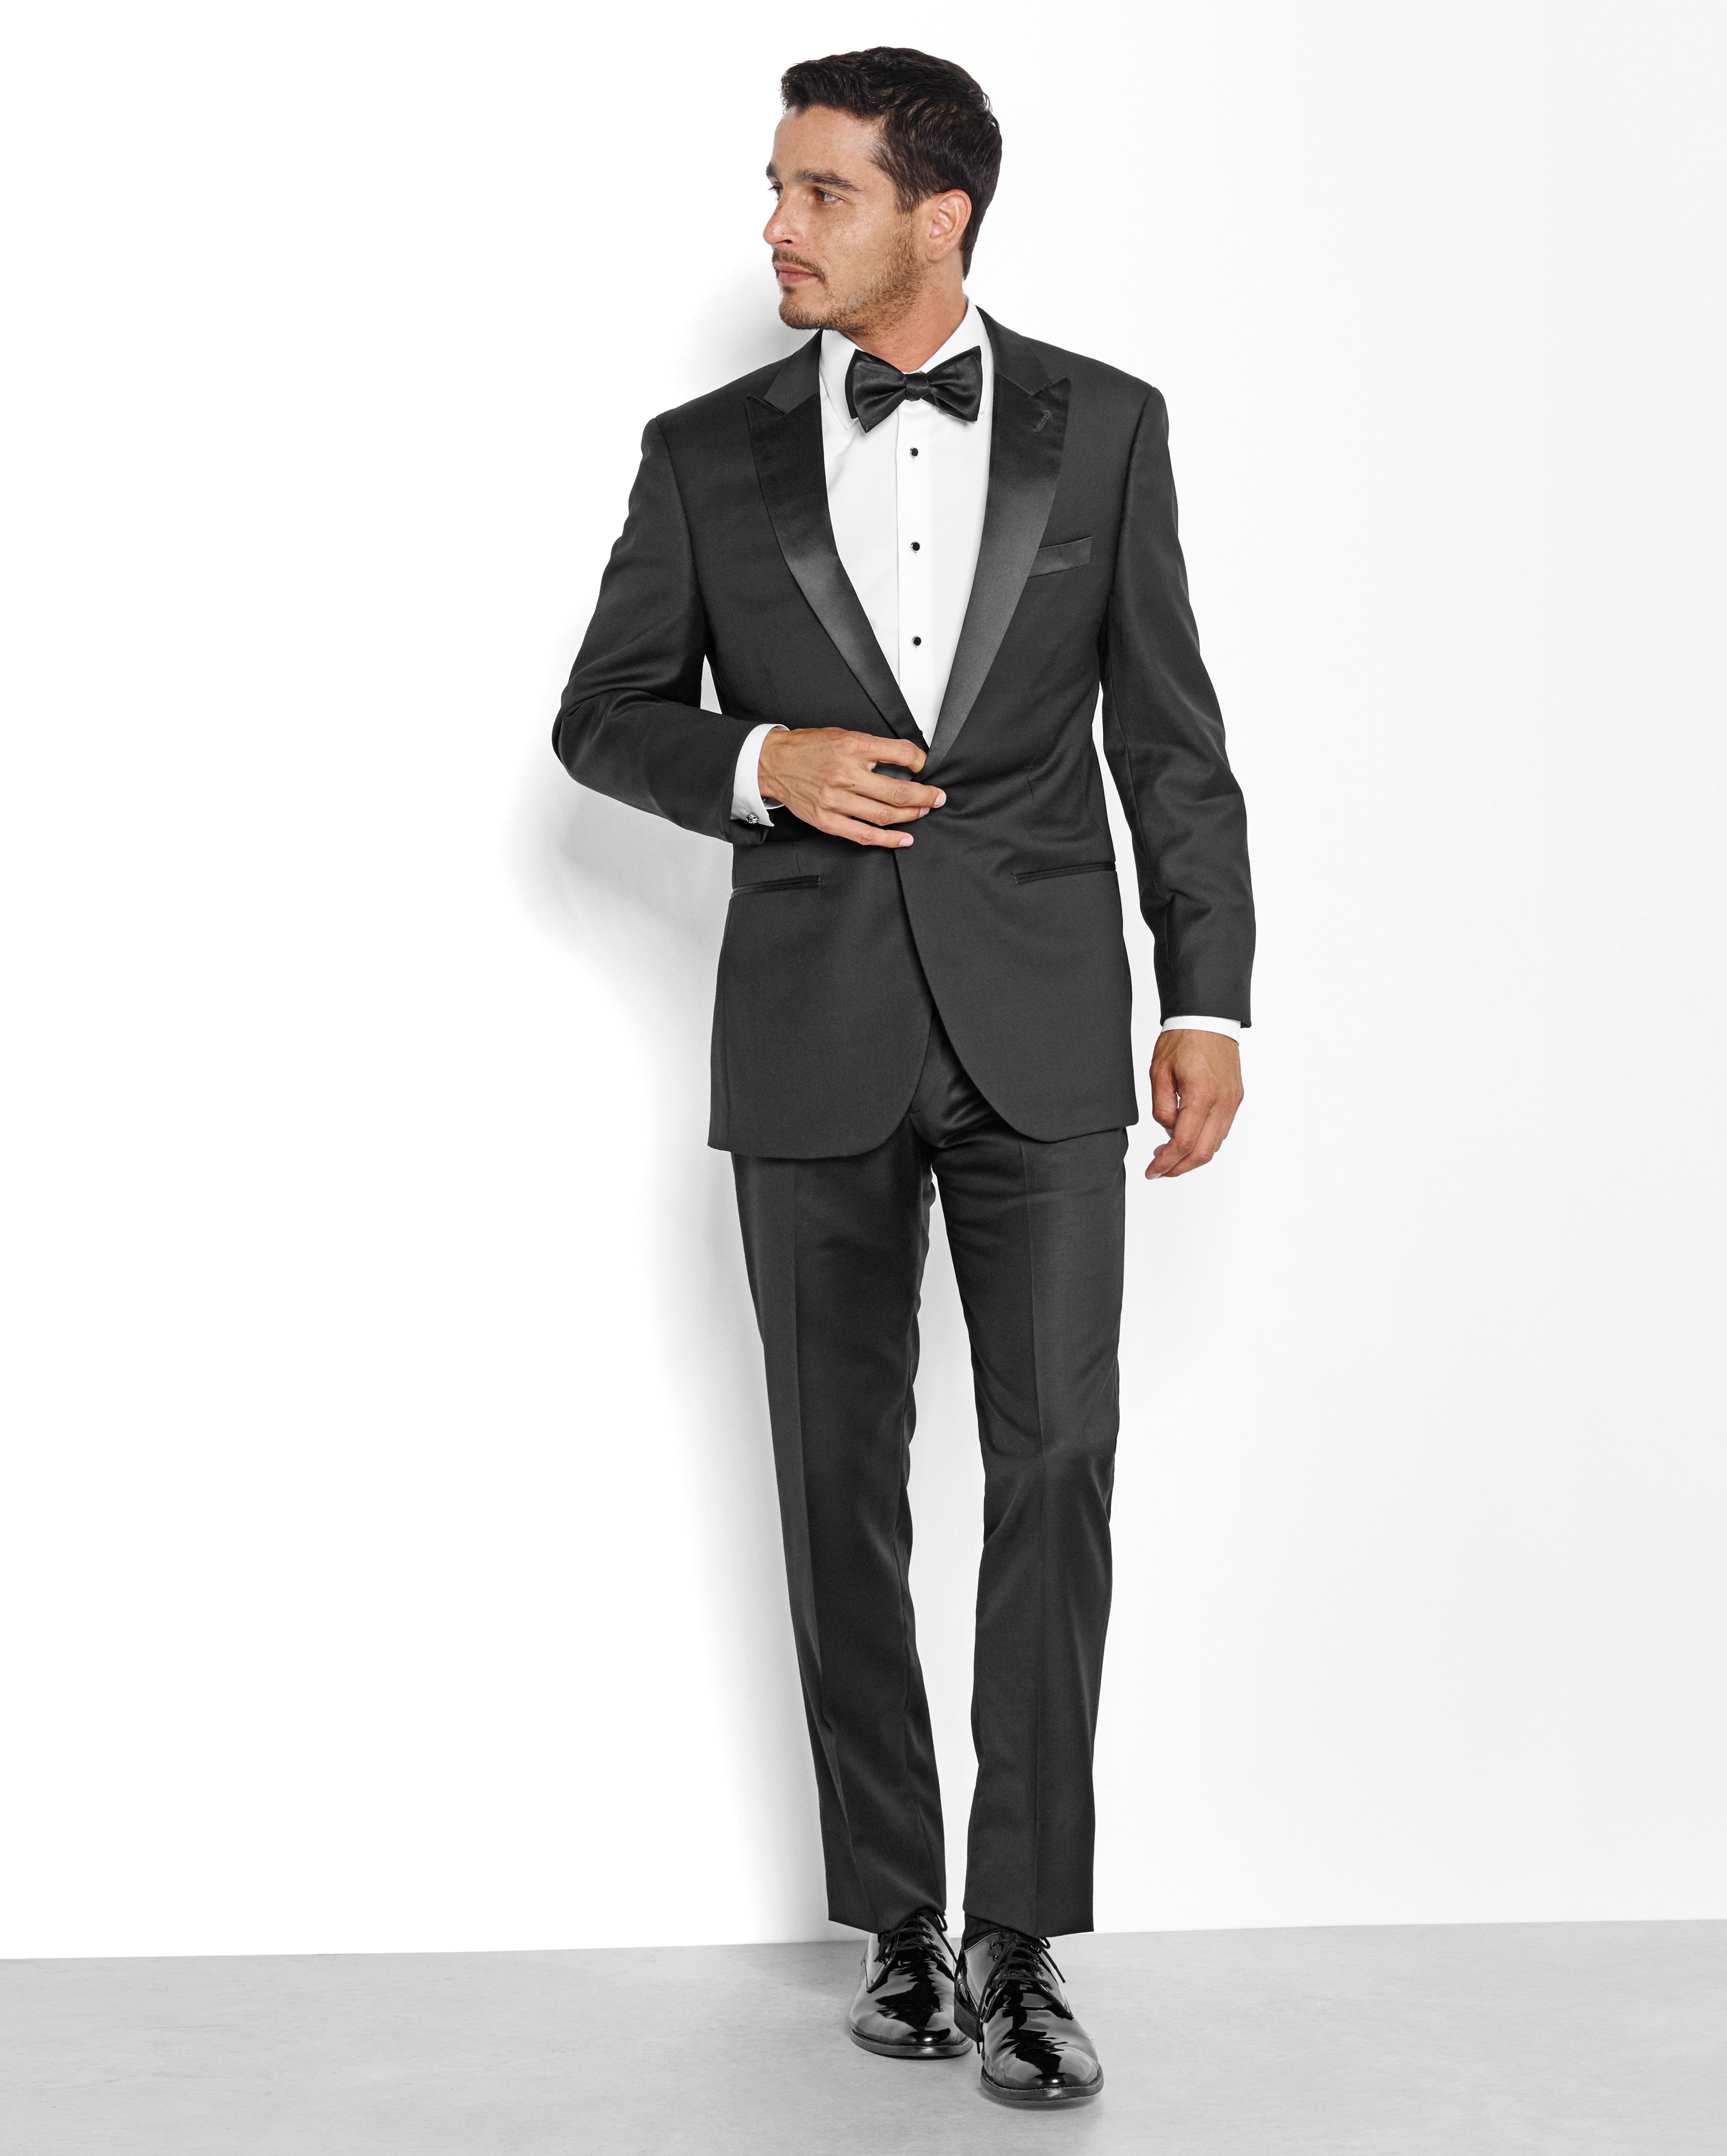 Suit Up! 8 Style Tips for the Groom